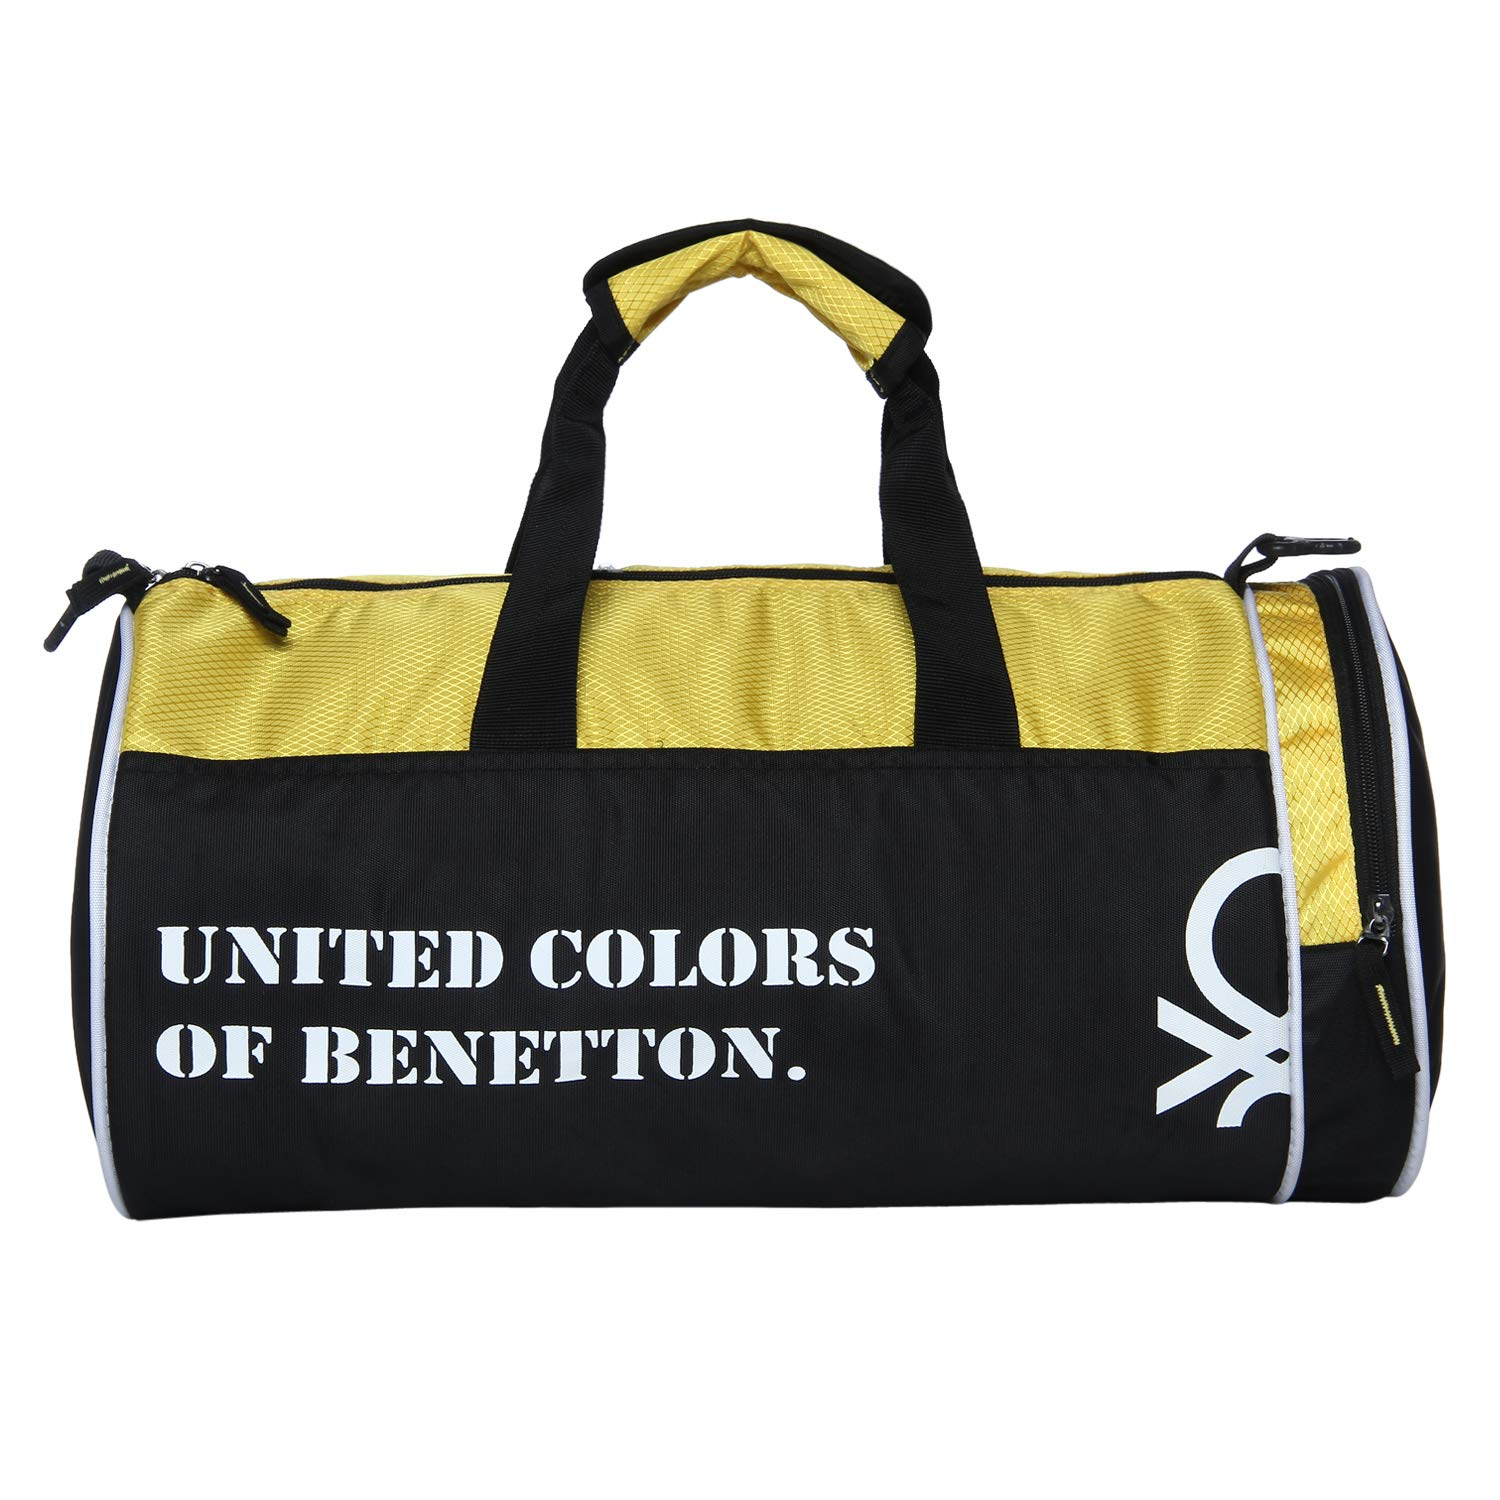 7722a3e423 United Colors of Benetton Gym Bag Polyester 45 cms Black Yellow Gym  Shoulder Bag